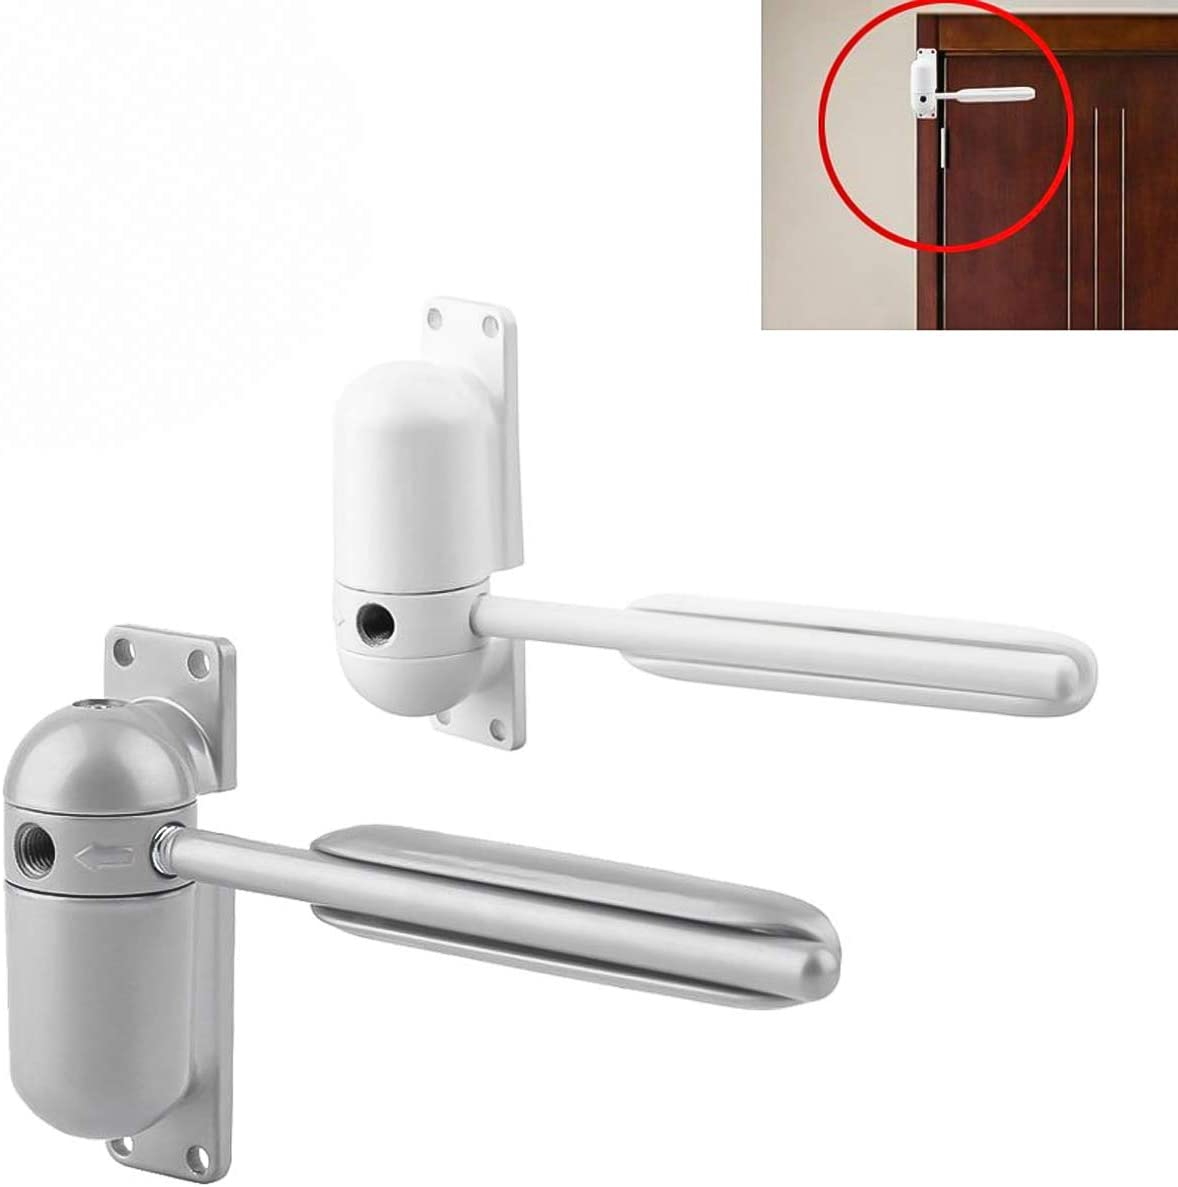 DERCLIVE Adjustable Durable Door Closer Surface Mounted Automatic Door Spring Loaded for Auto Closing